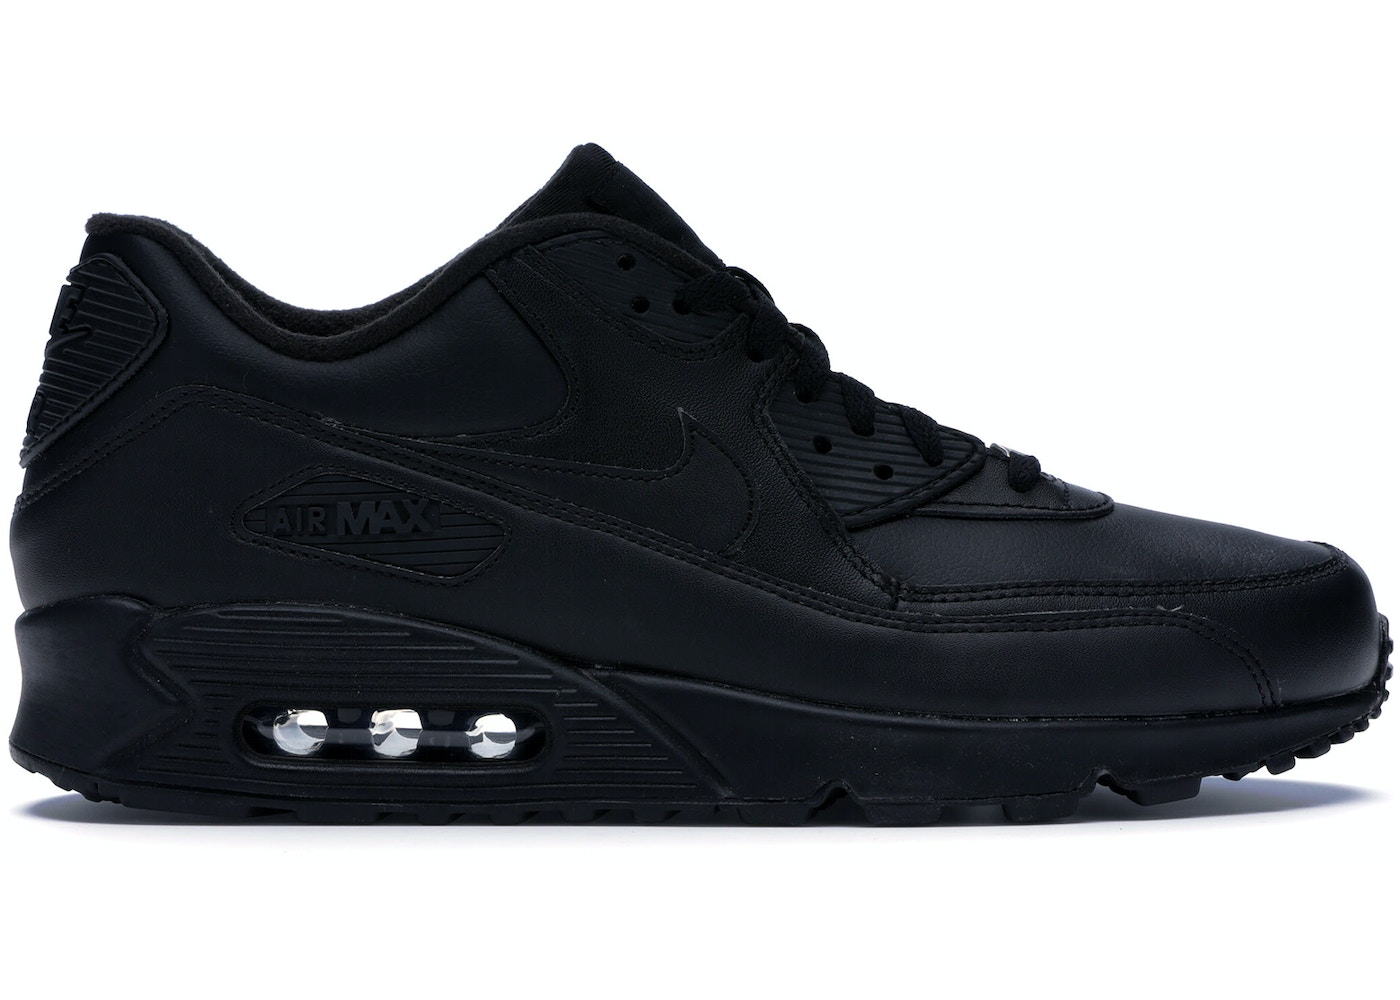 0ccfff173c Nike Air Max 90 Leather Black - 302519-001